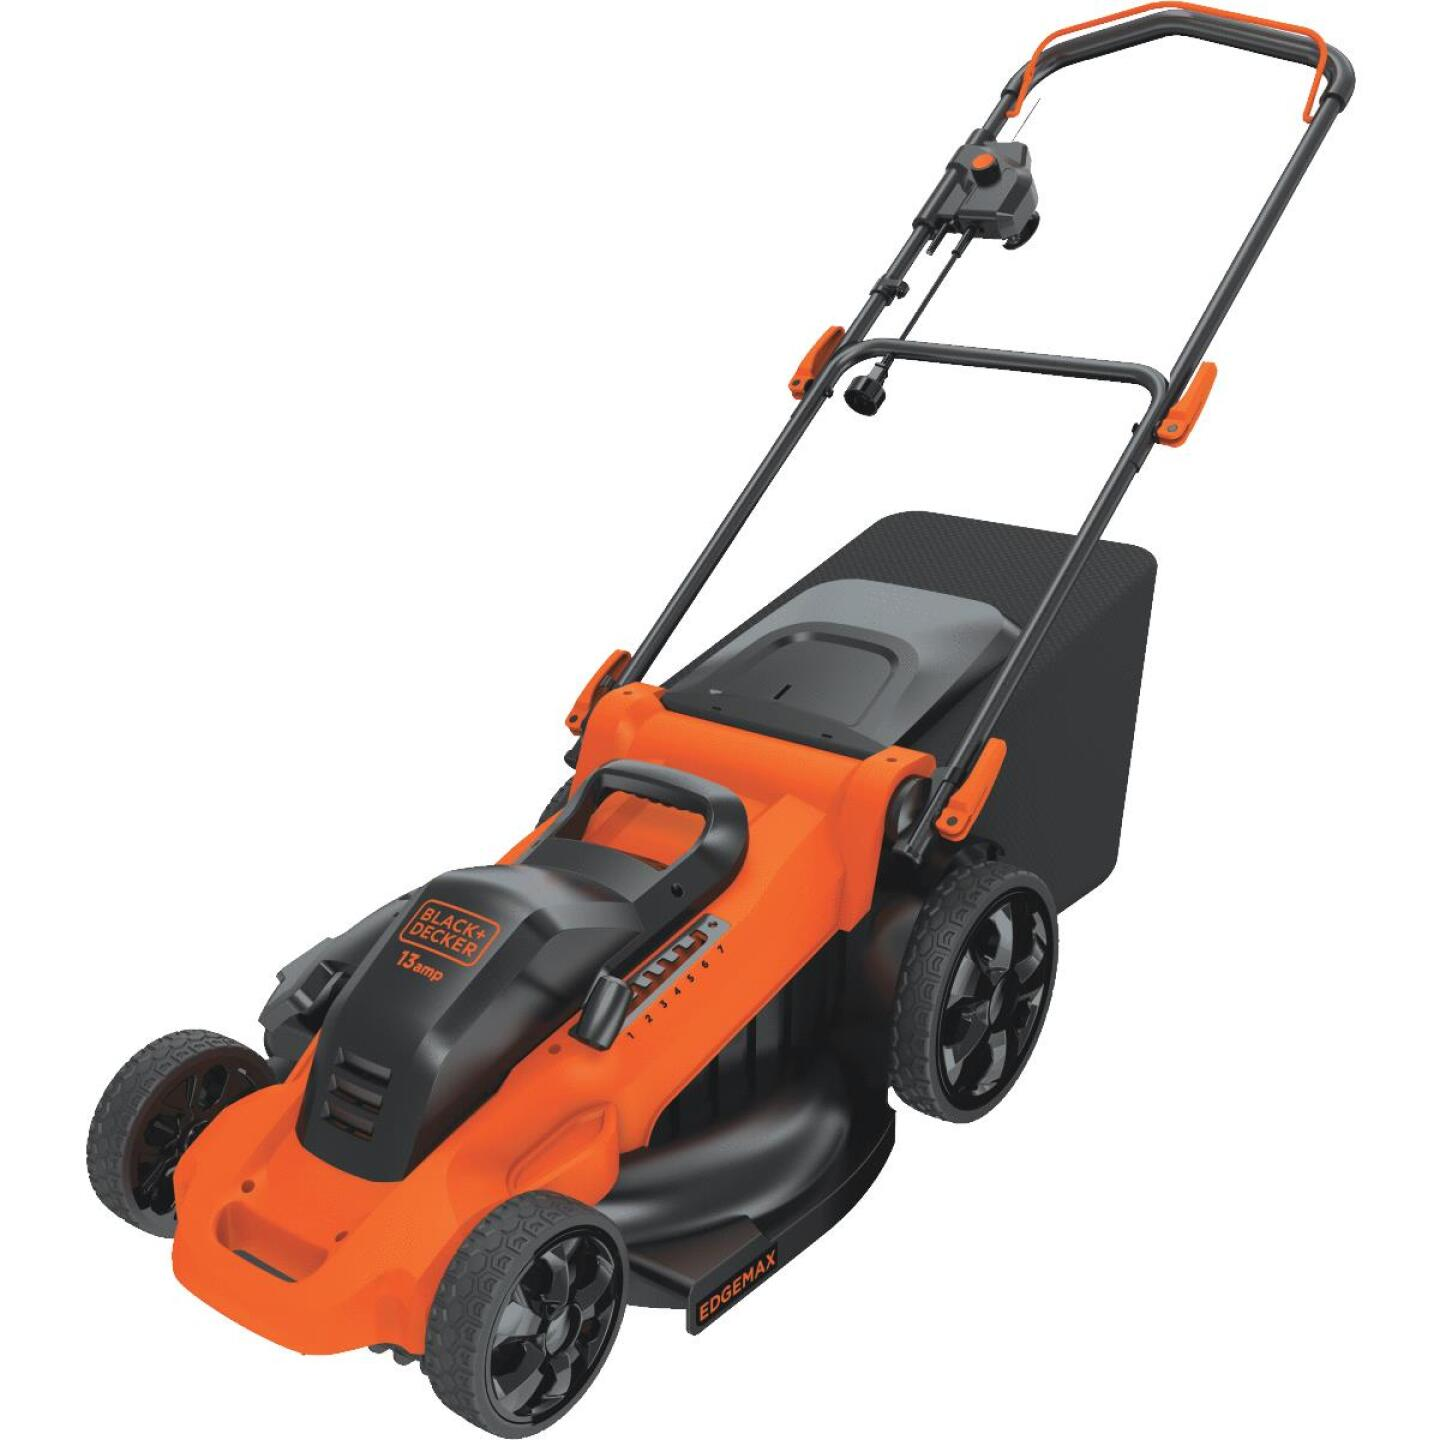 Black & Decker 20 In. 13A Push Electric Lawn Mower Image 2